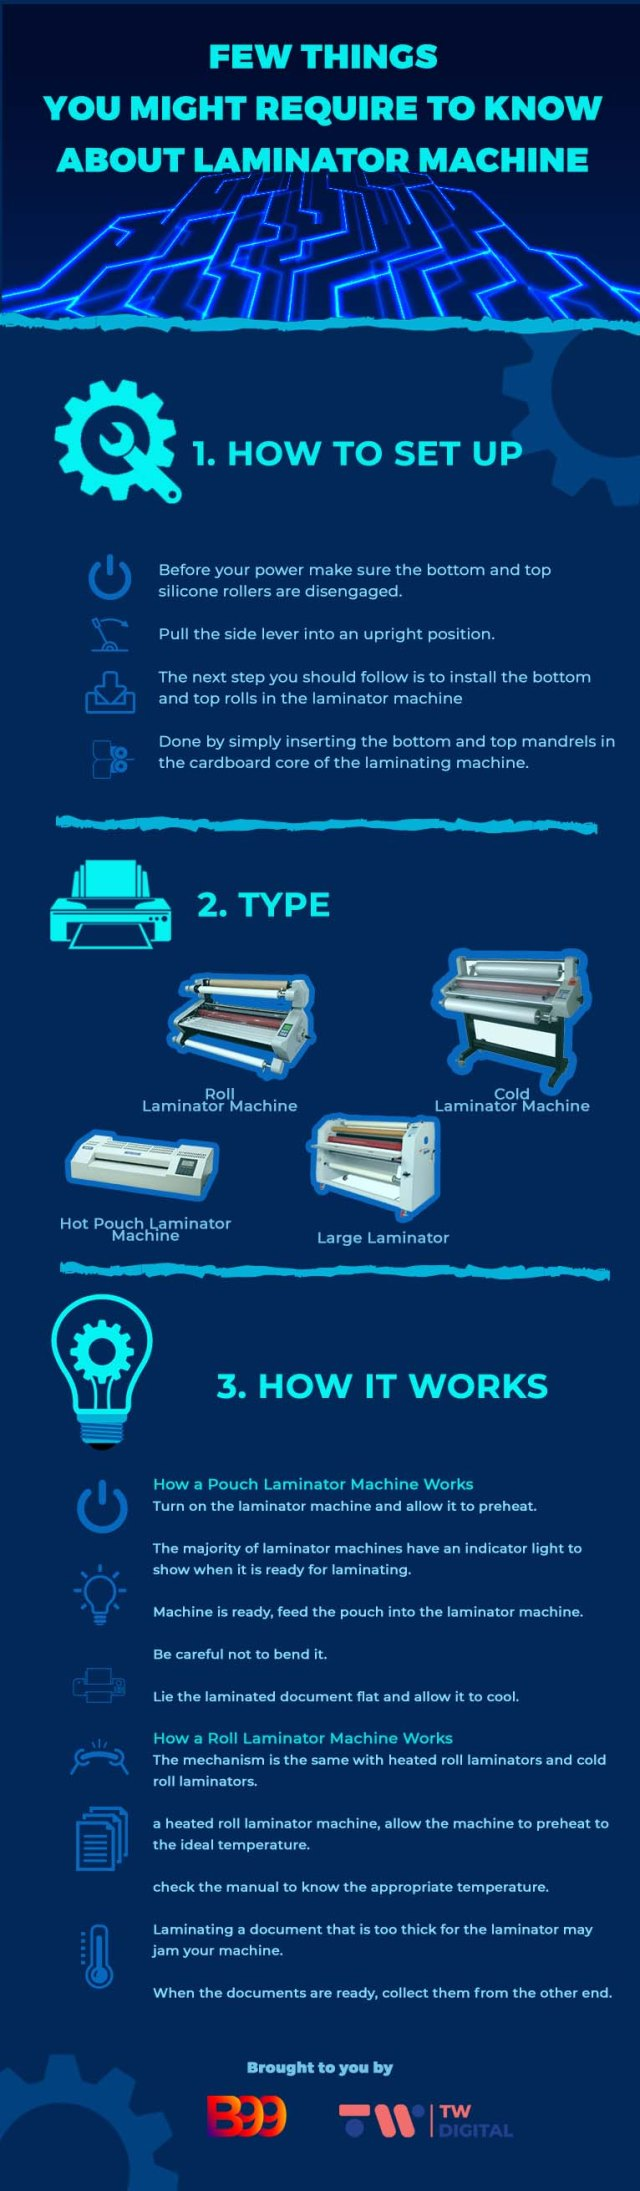 [infographic] Few Things You Might Require To Know About Laminator Machine